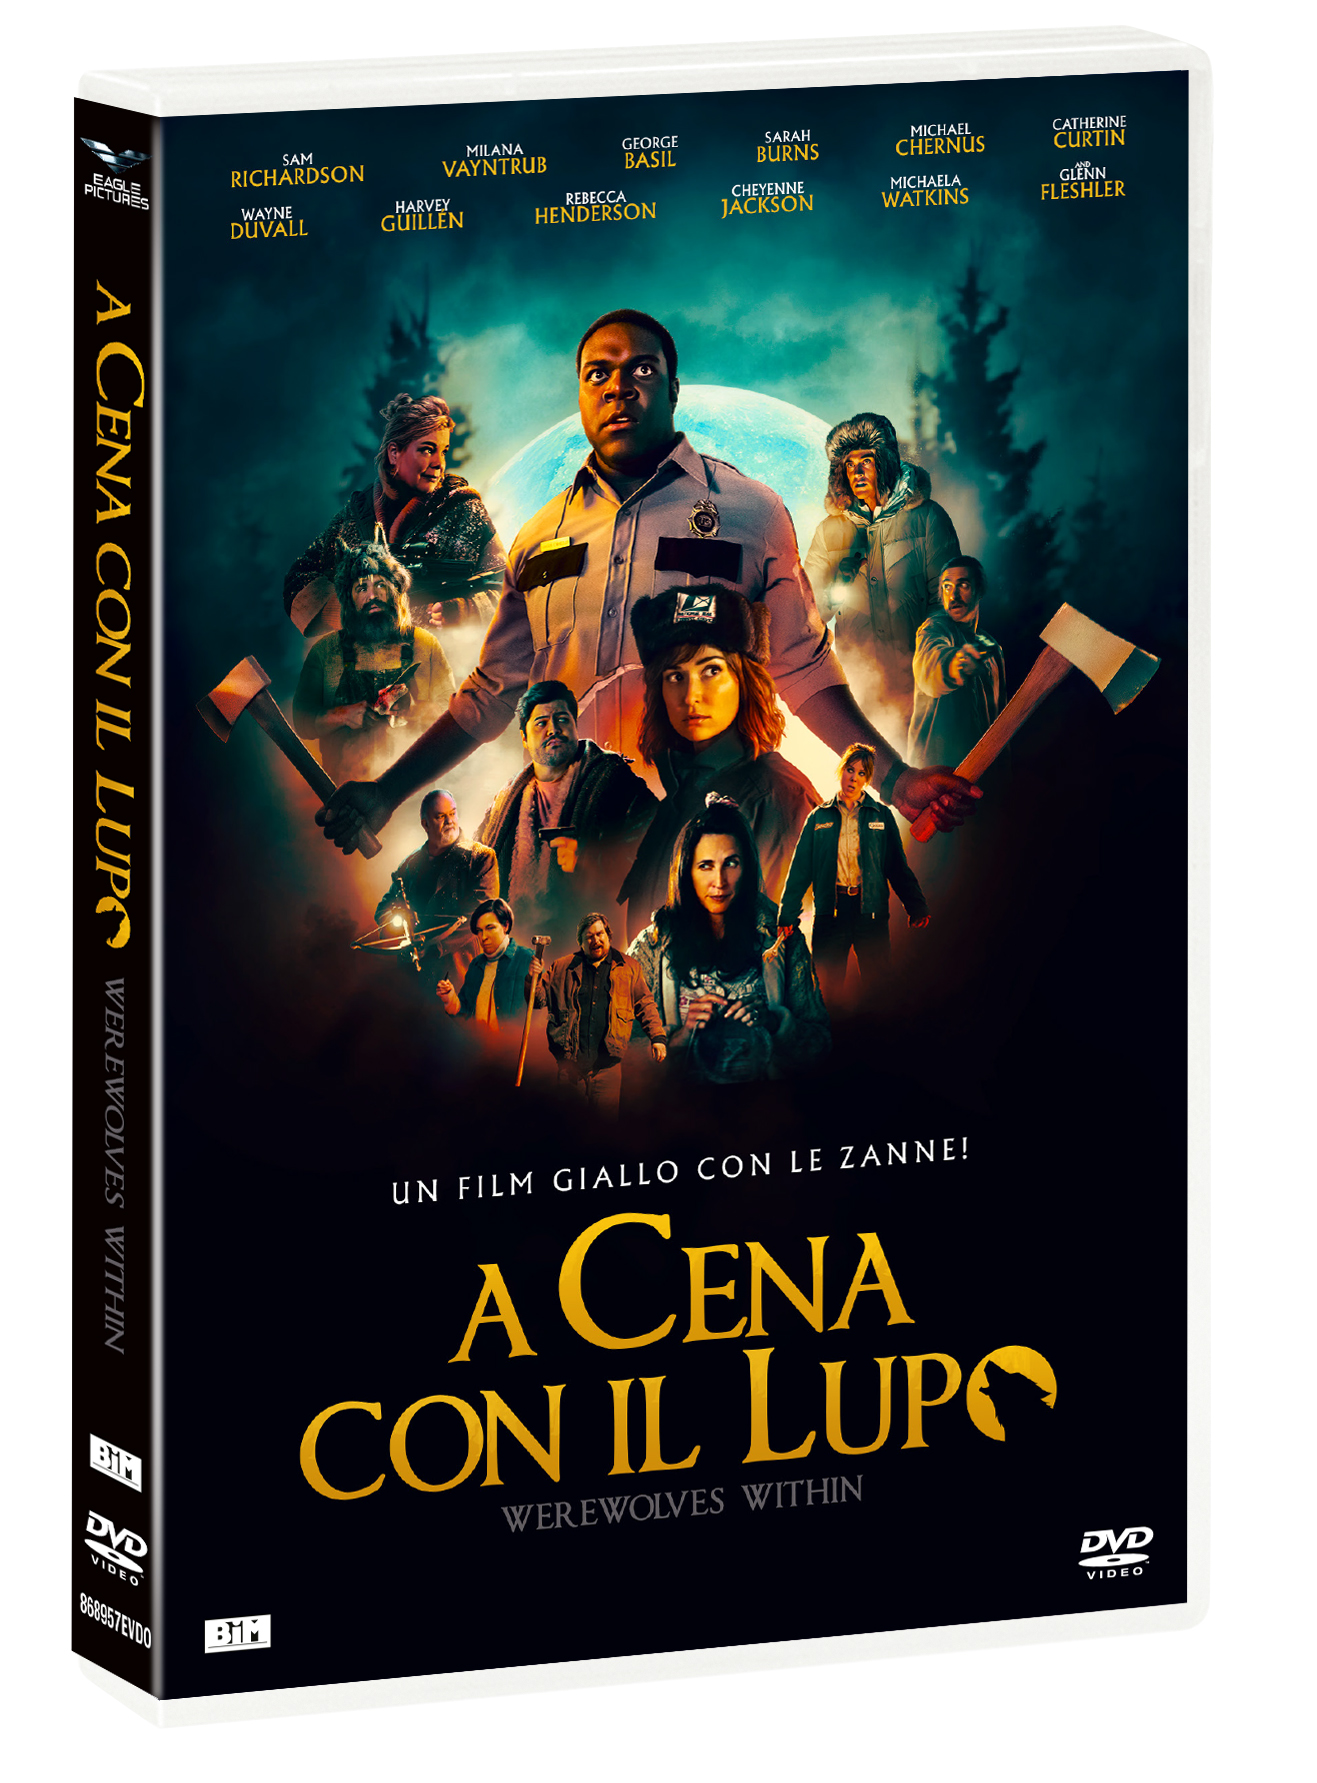 A CENA CON IL LUPO - WEREWOLVES WITHIN (DVD)